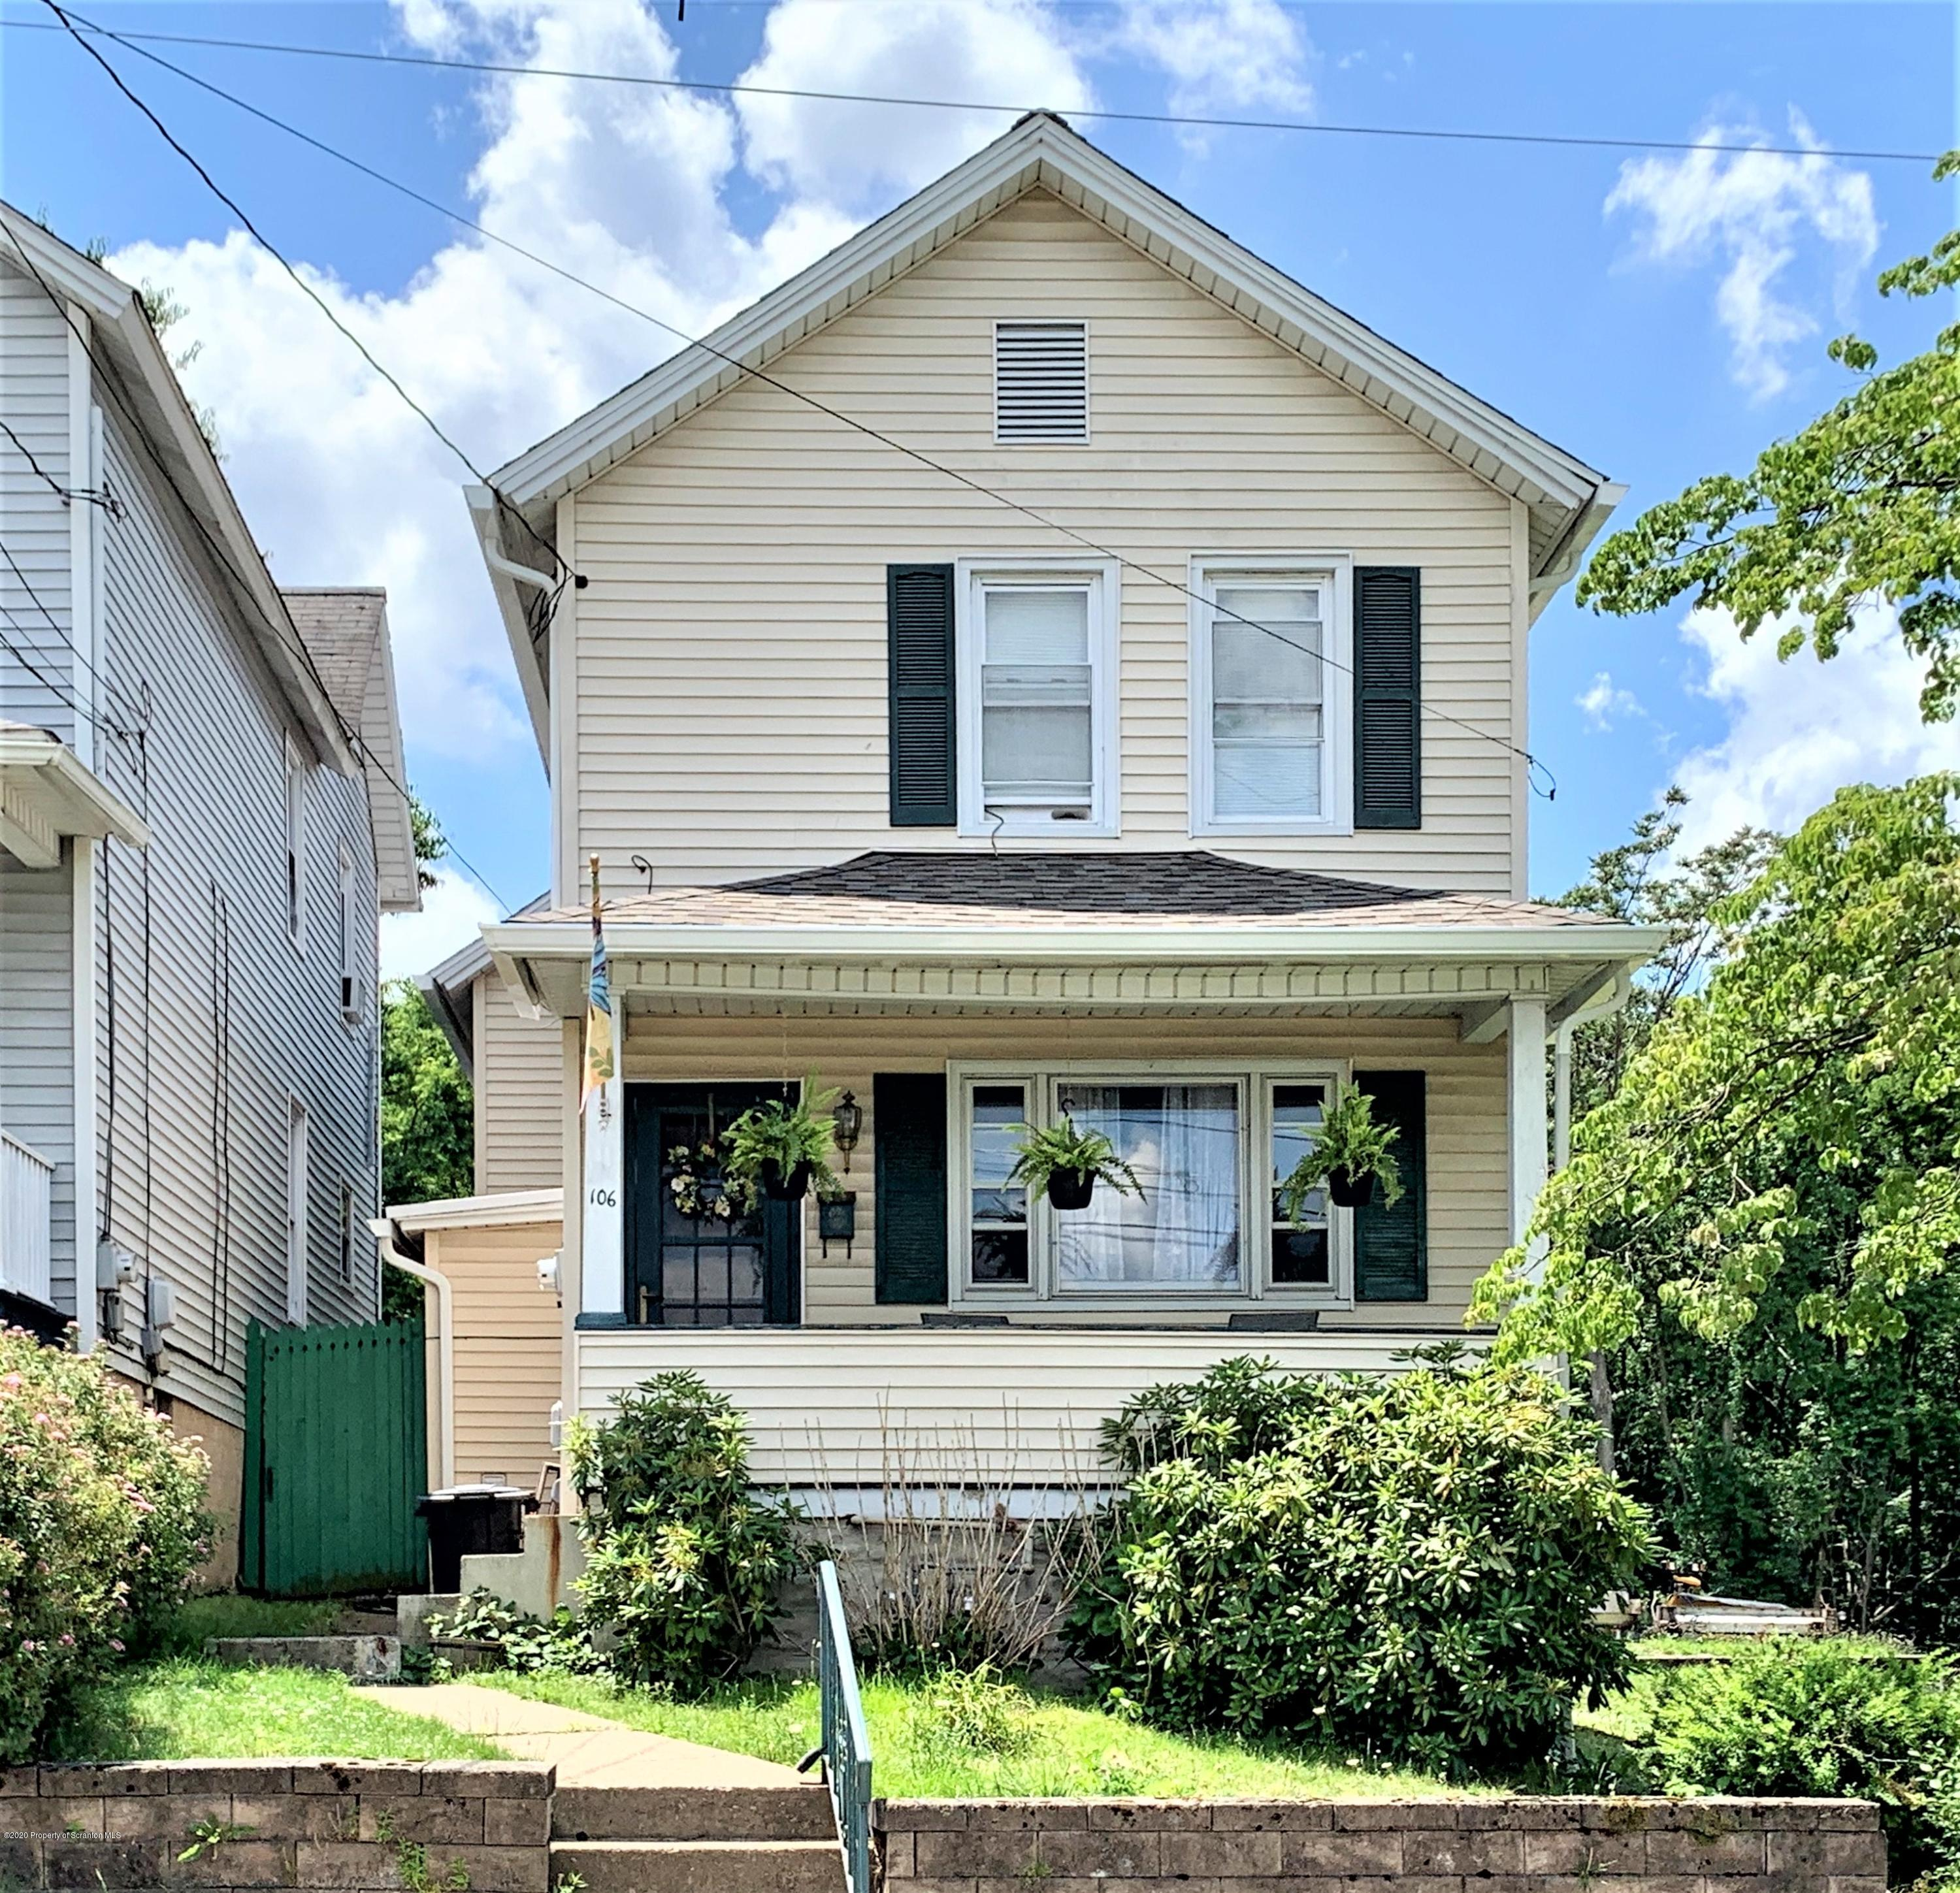 106 Grove St, Dunmore, Pennsylvania 18510, 3 Bedrooms Bedrooms, 7 Rooms Rooms,2 BathroomsBathrooms,Single Family,For Sale,Grove,20-2211